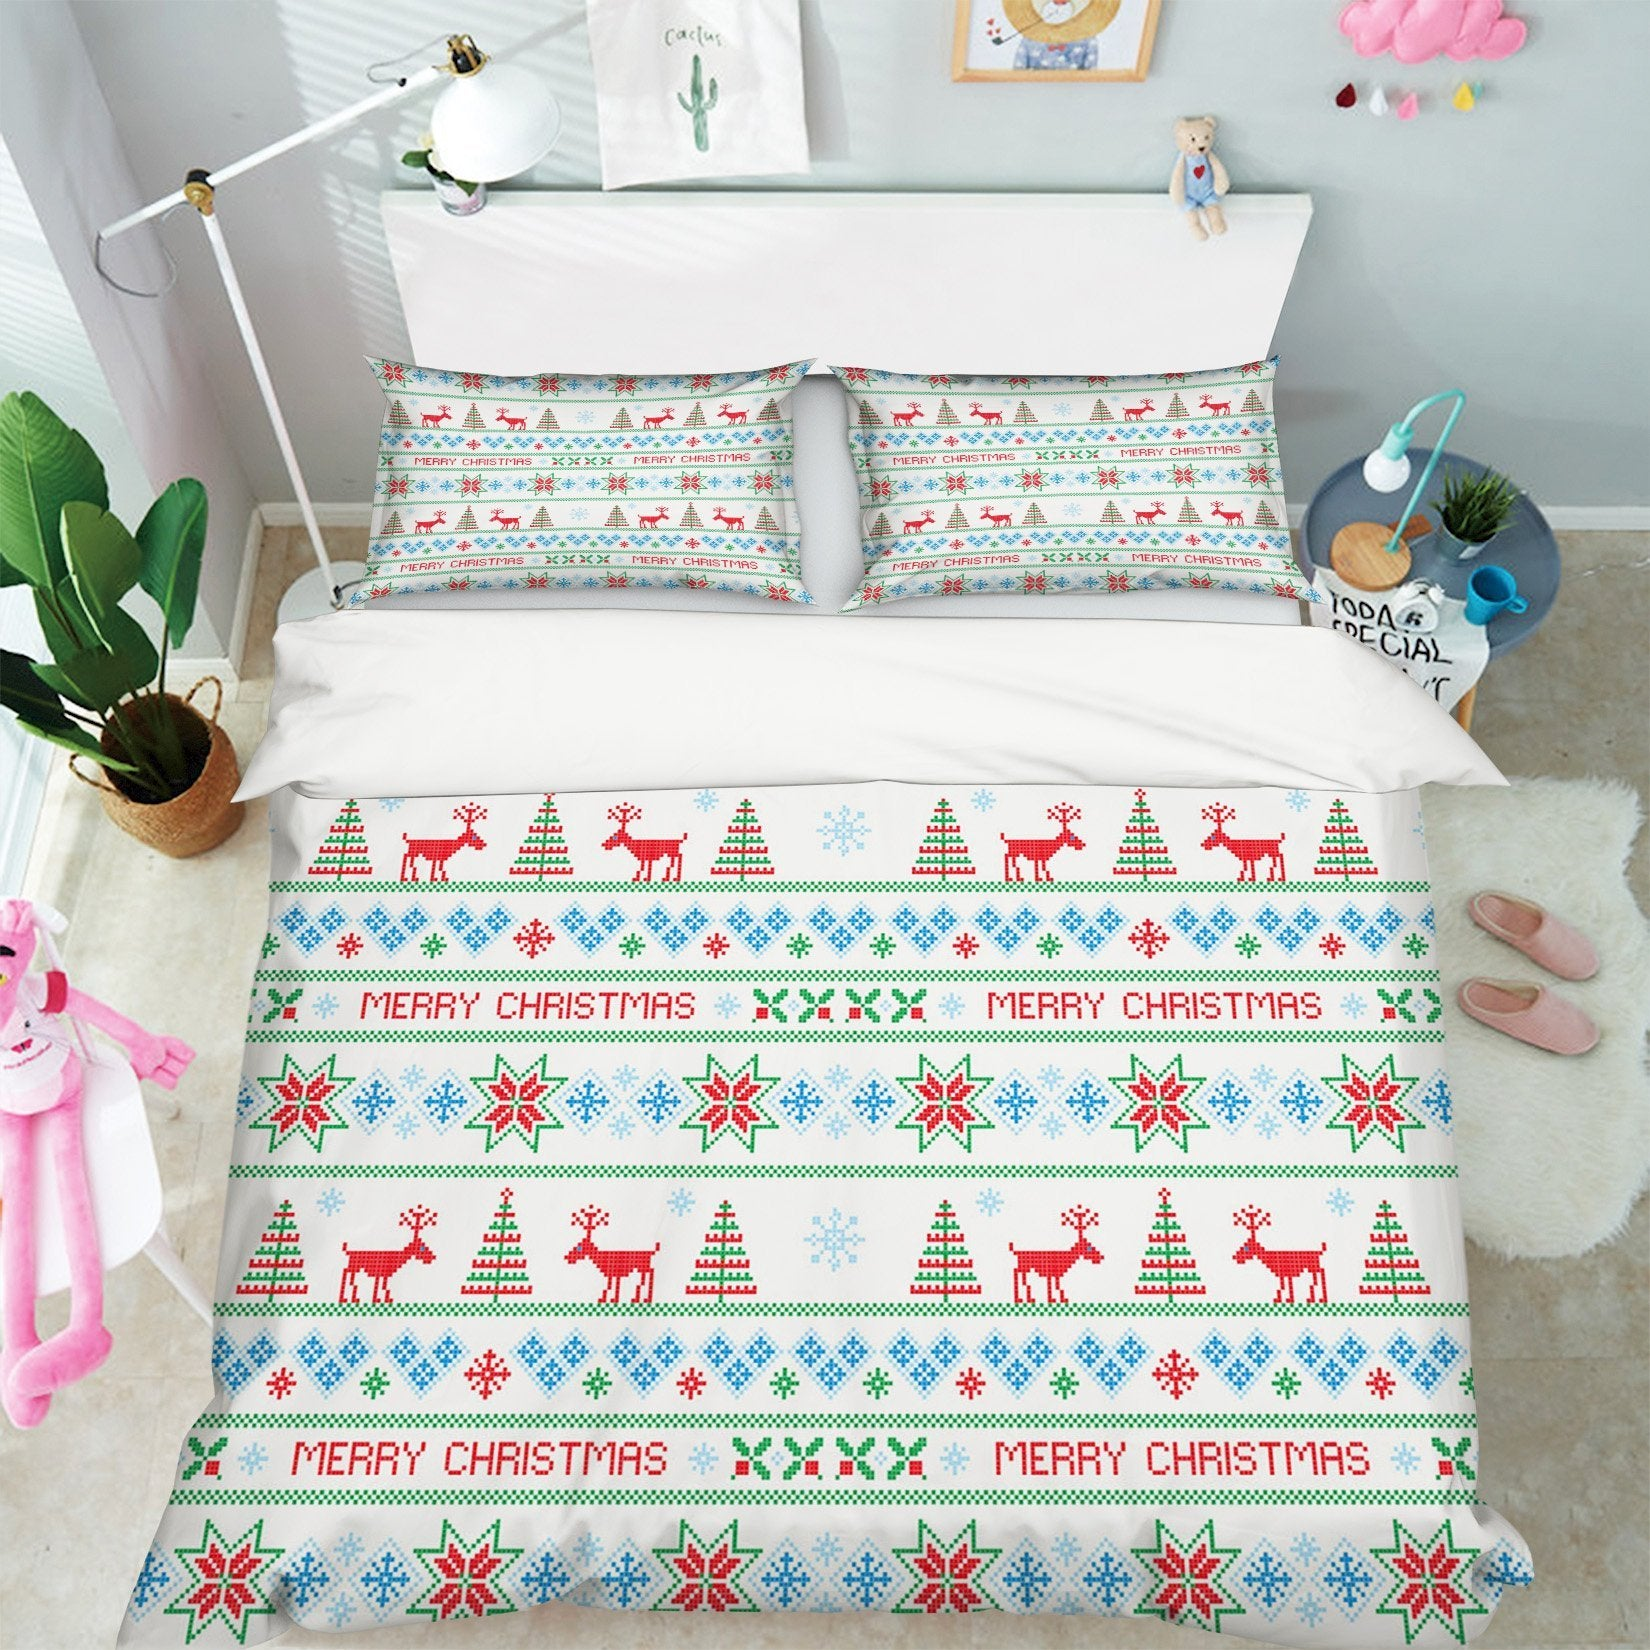 3D Christmas Deer Pattern 1 Bed Pillowcases Quilt Quiet Covers AJ Creativity Home